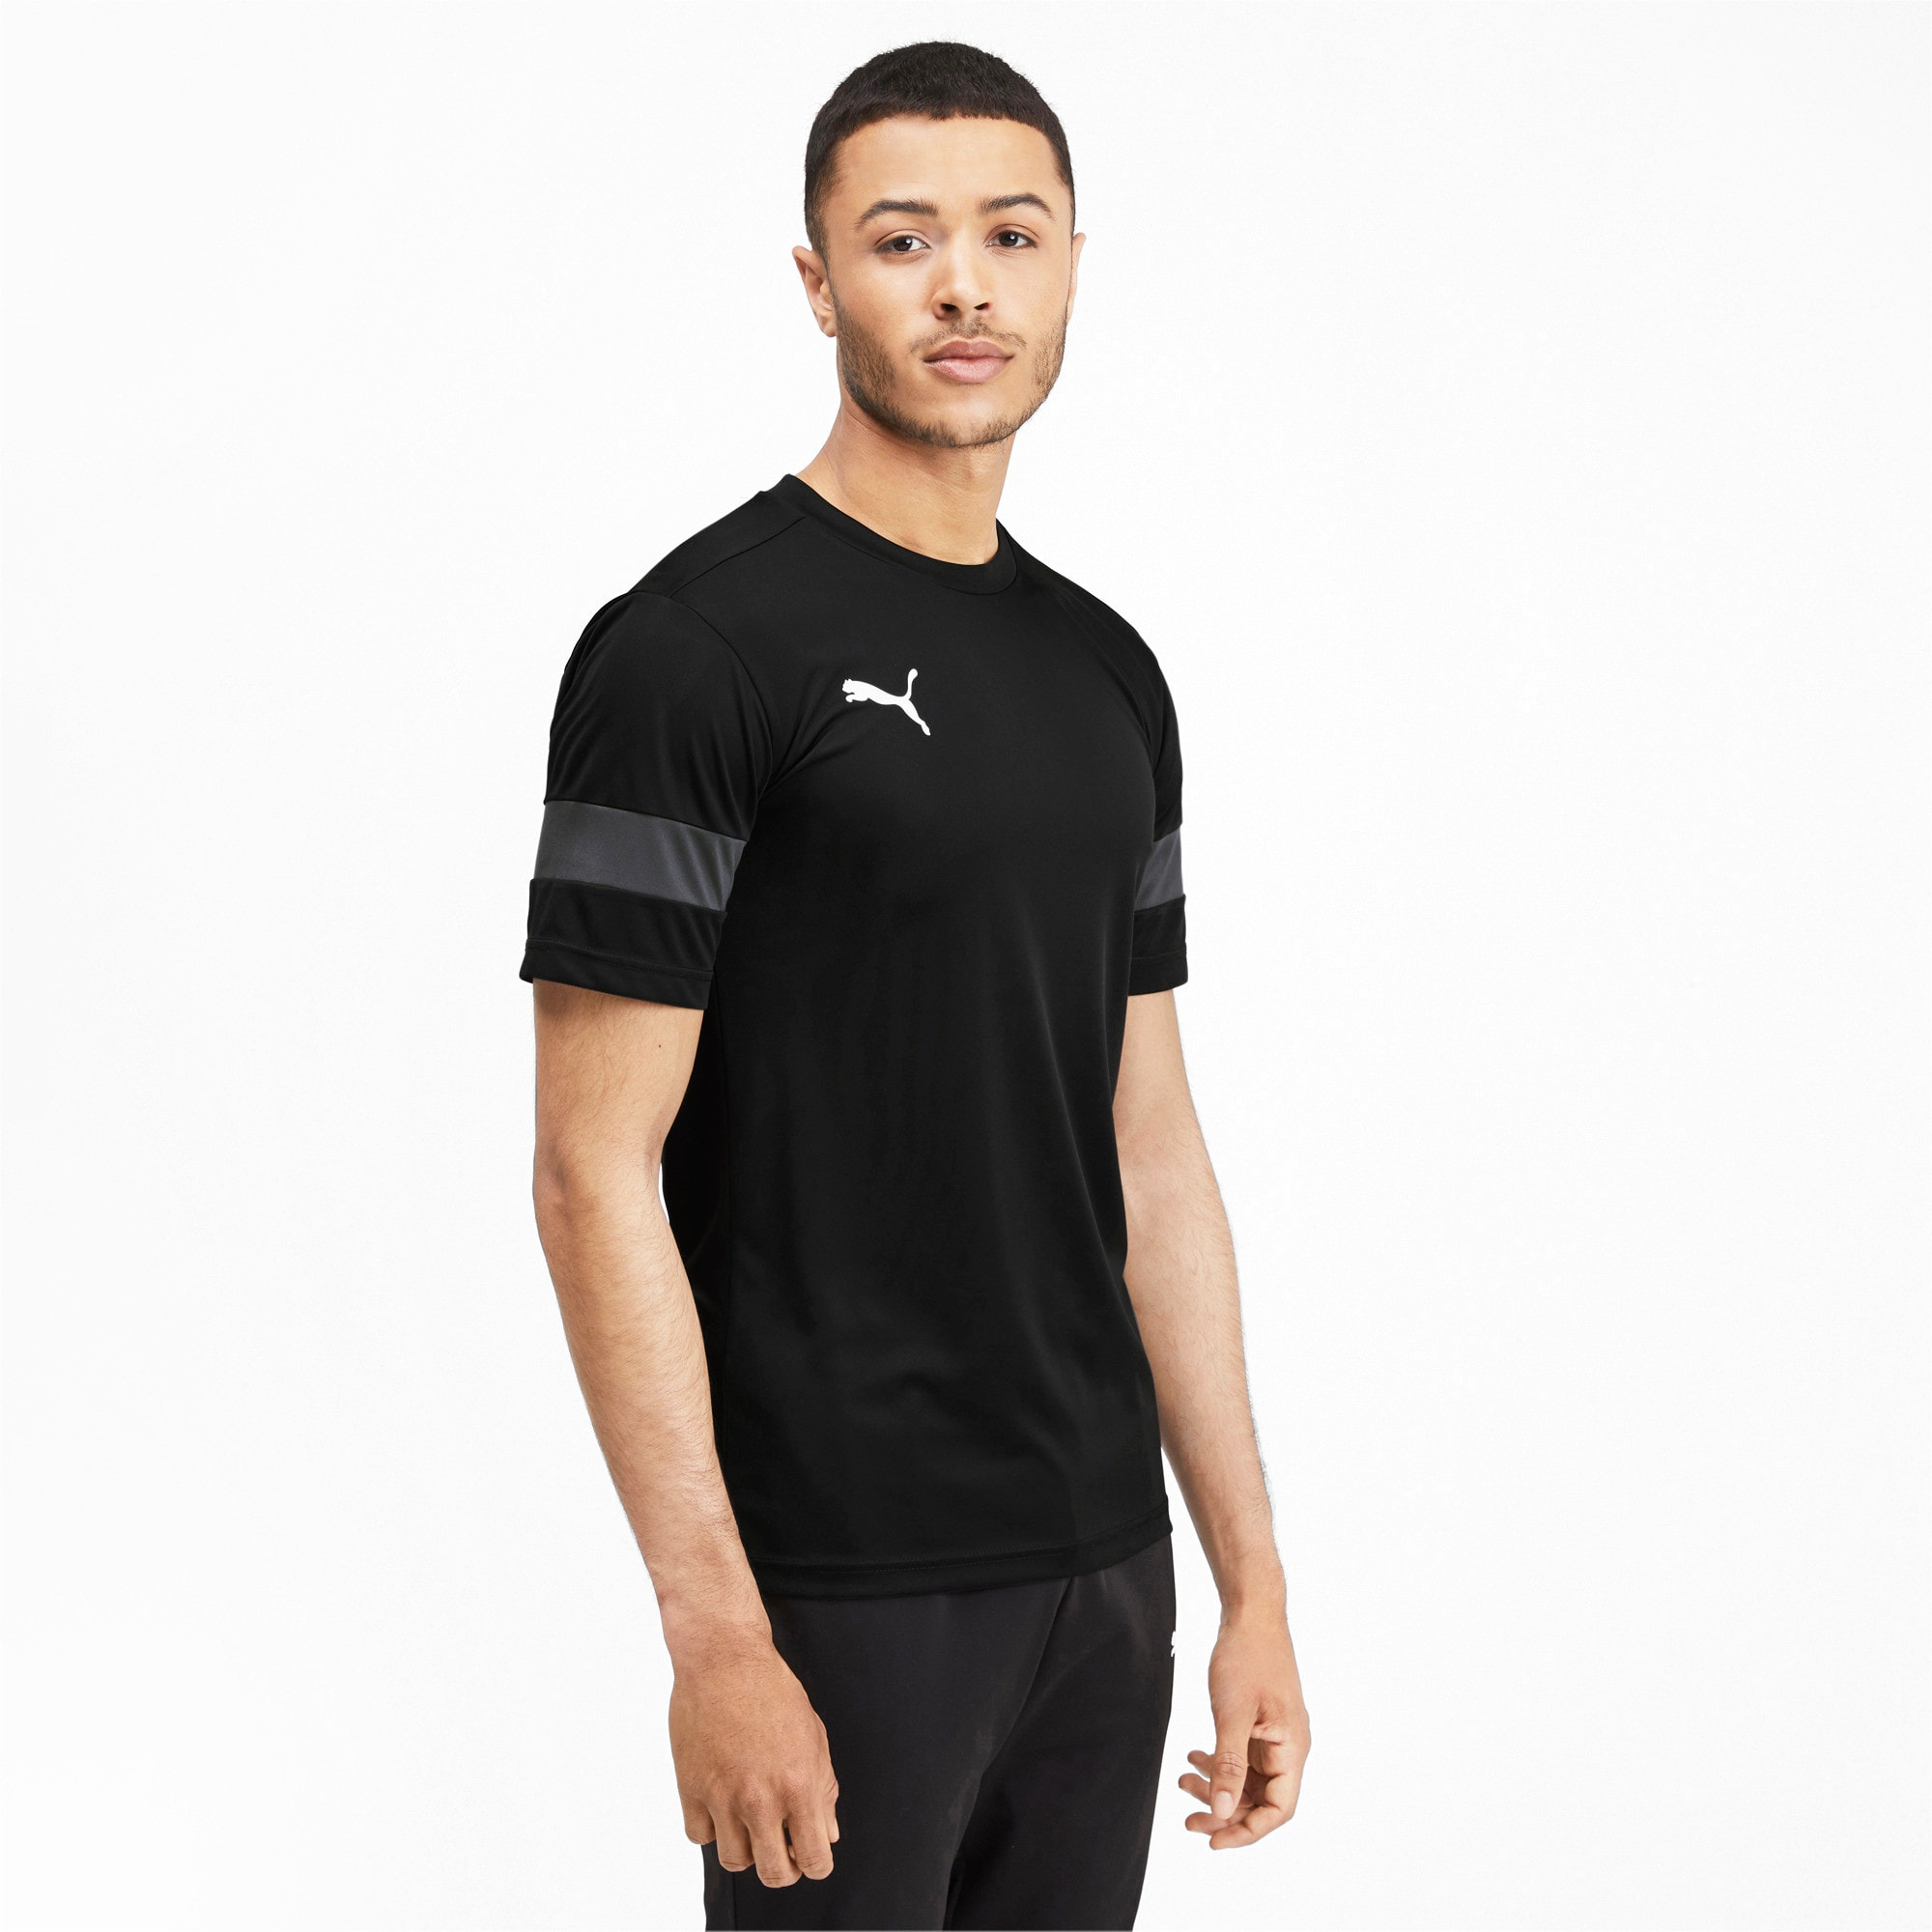 Thumbnail 1 of Herren Trainingsshirt, Puma Black-Asphalt, medium